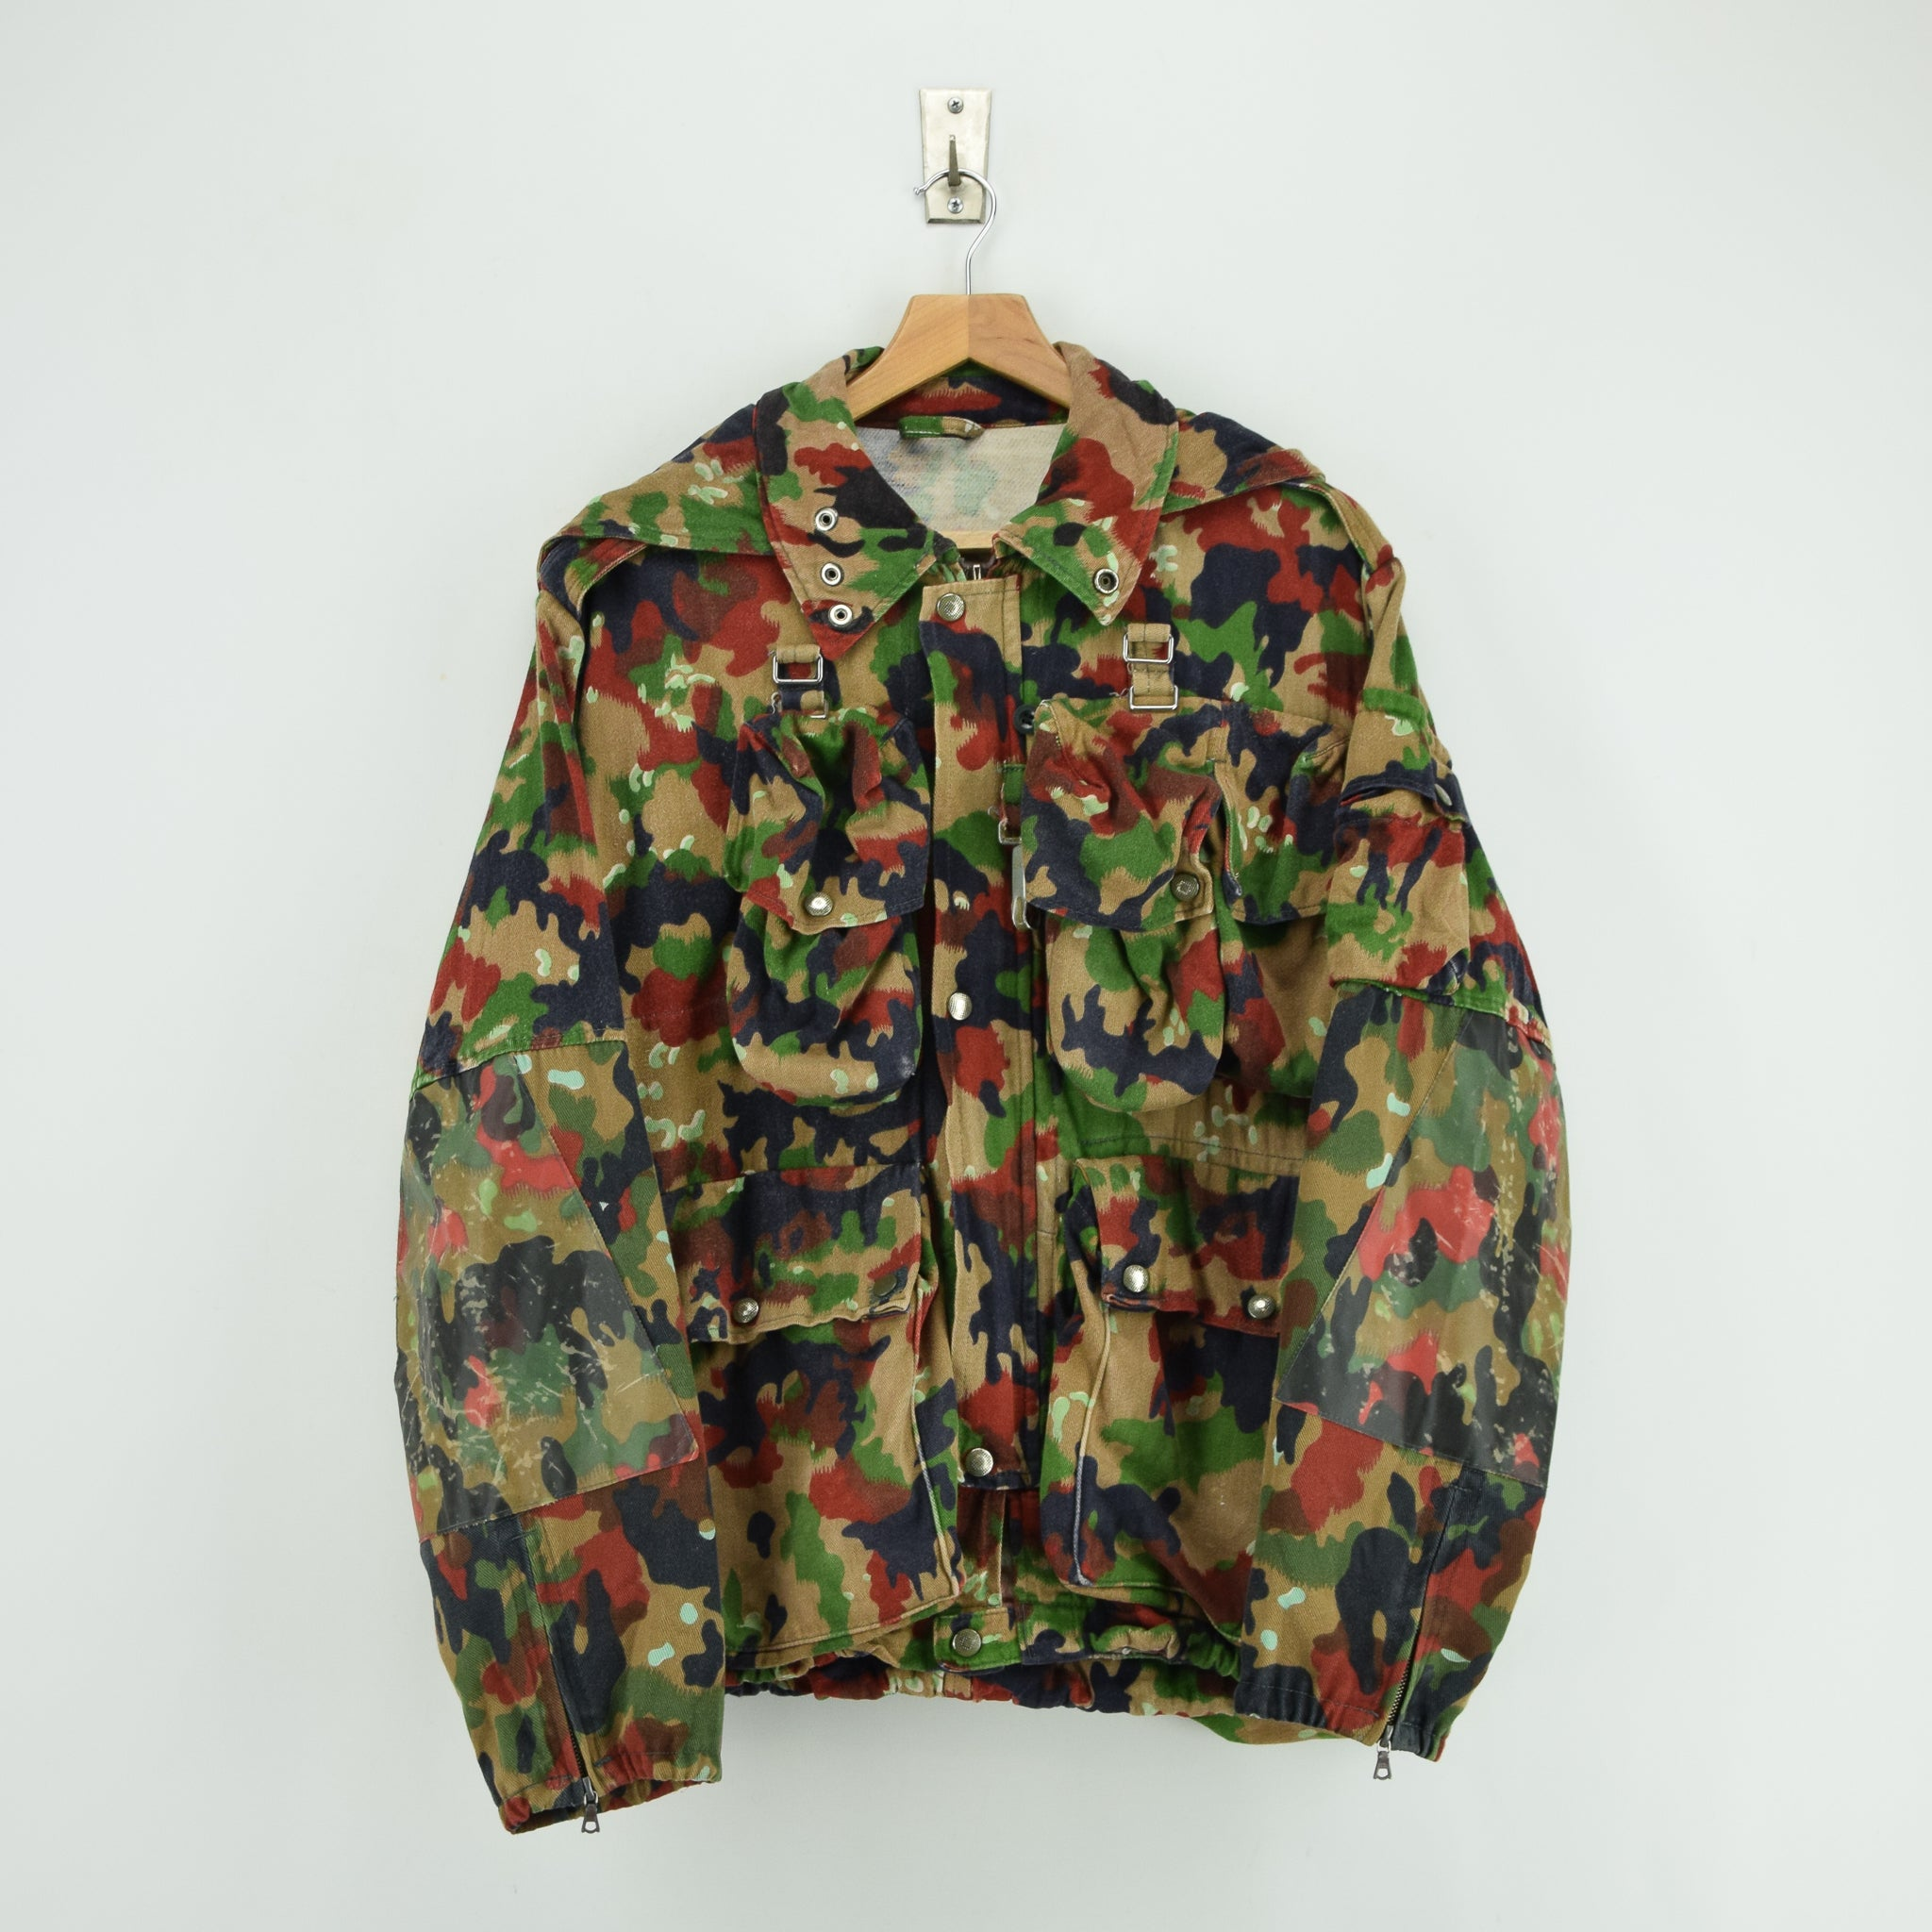 Vintage 70s Swiss Army Alpenflage Camo Sniper Combat Field Jacket S / M front